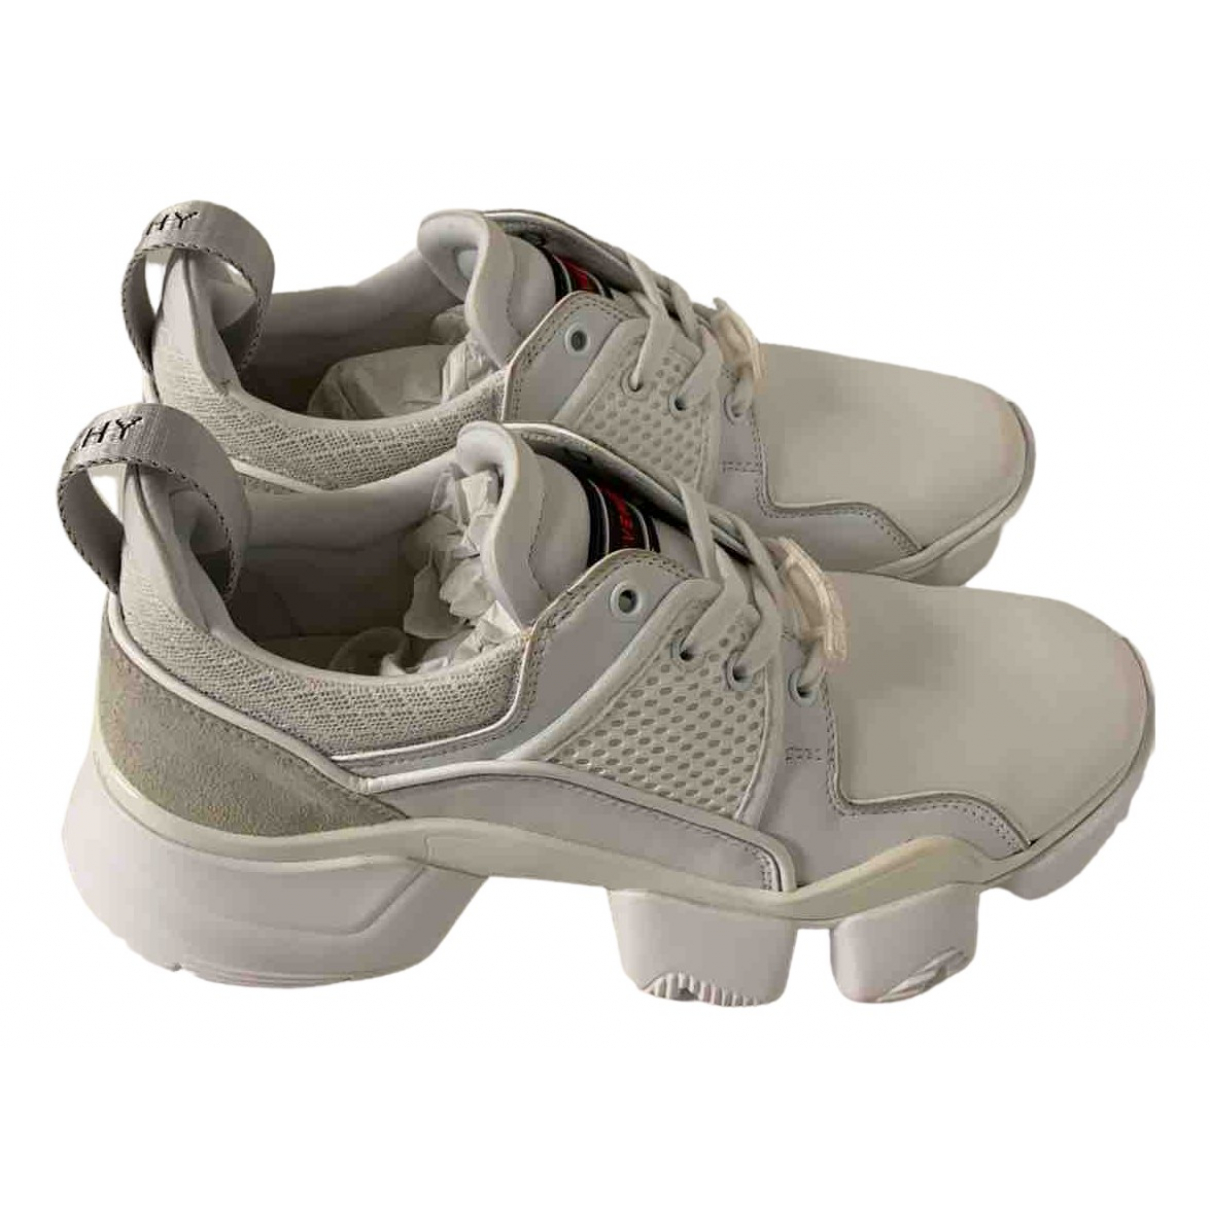 Givenchy Jaw White Leather Trainers for Women 41 EU